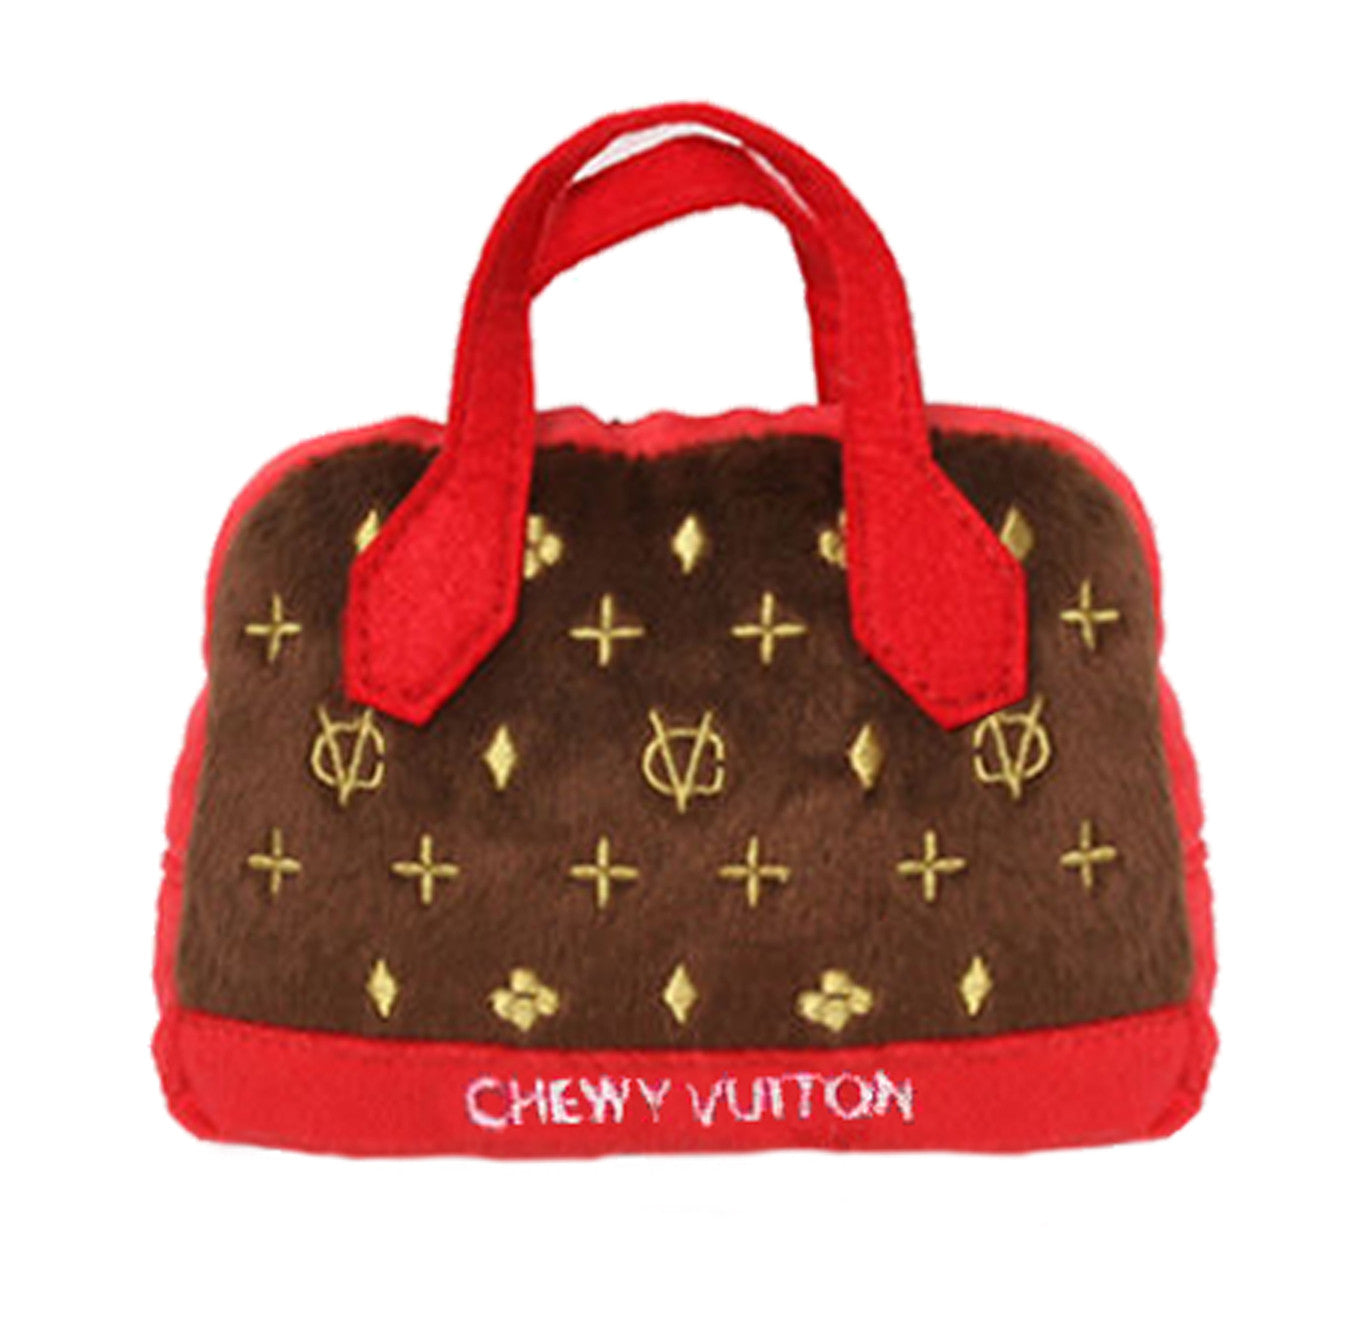 Chewy Vuiton Posh Purse Dog Toy - North Shore Saddlery